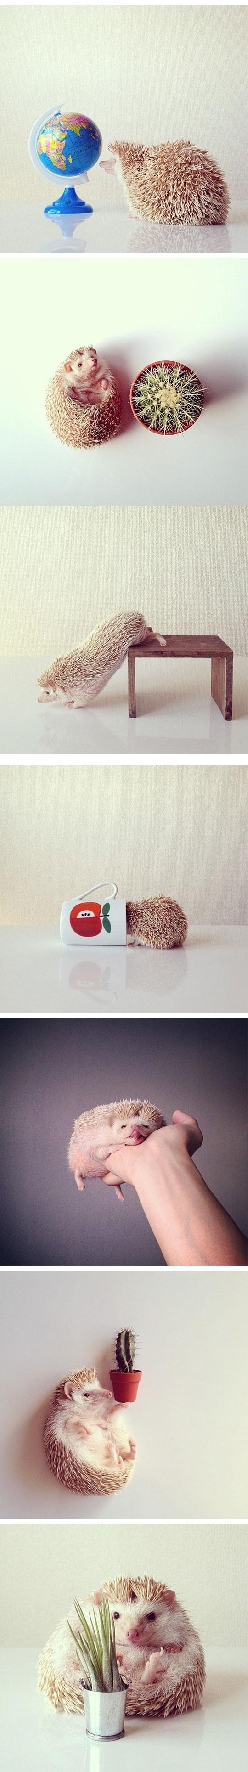 Darcy, the most famous hedgehog on the Internet